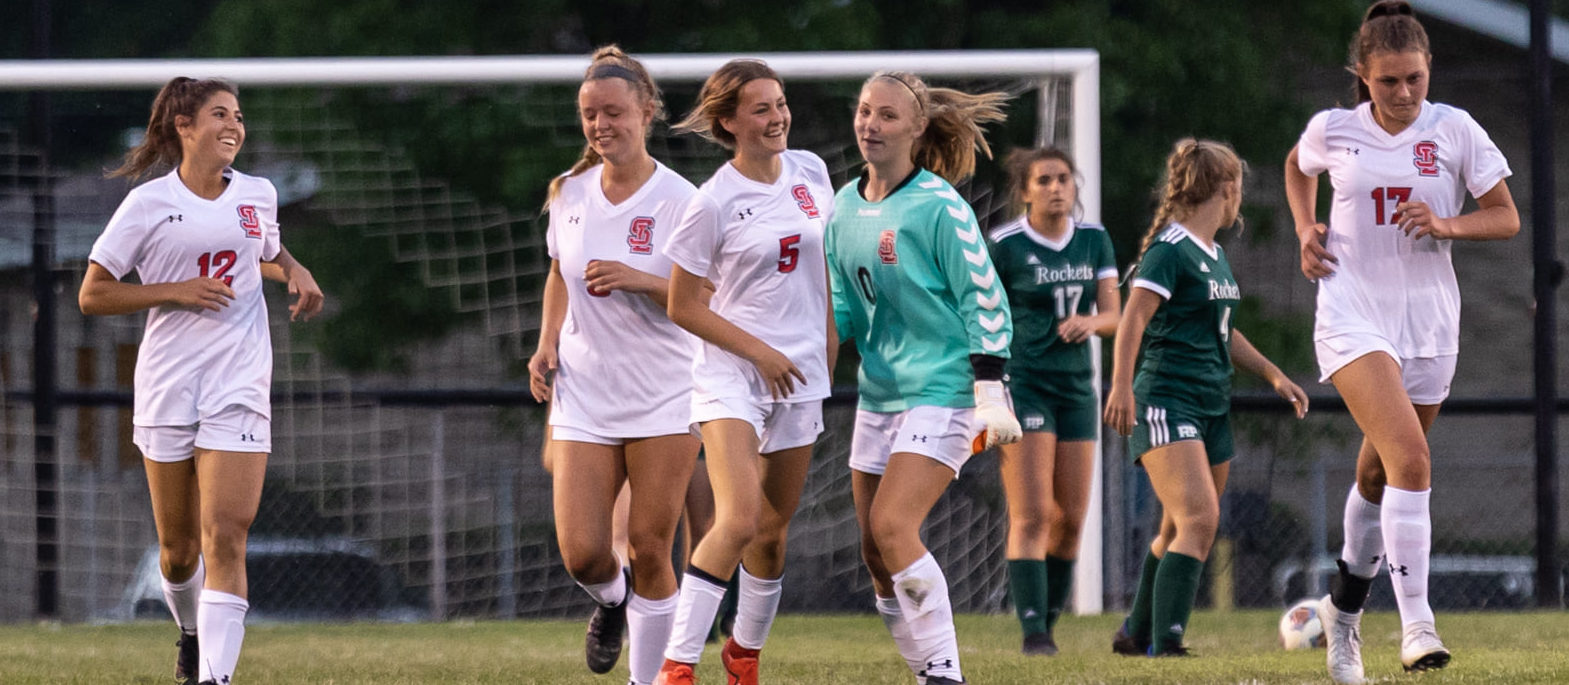 Spring Lake girls soccer team rolls past Reeths-Puffer 4-1 to earn a berth in the Division 2 district championship game